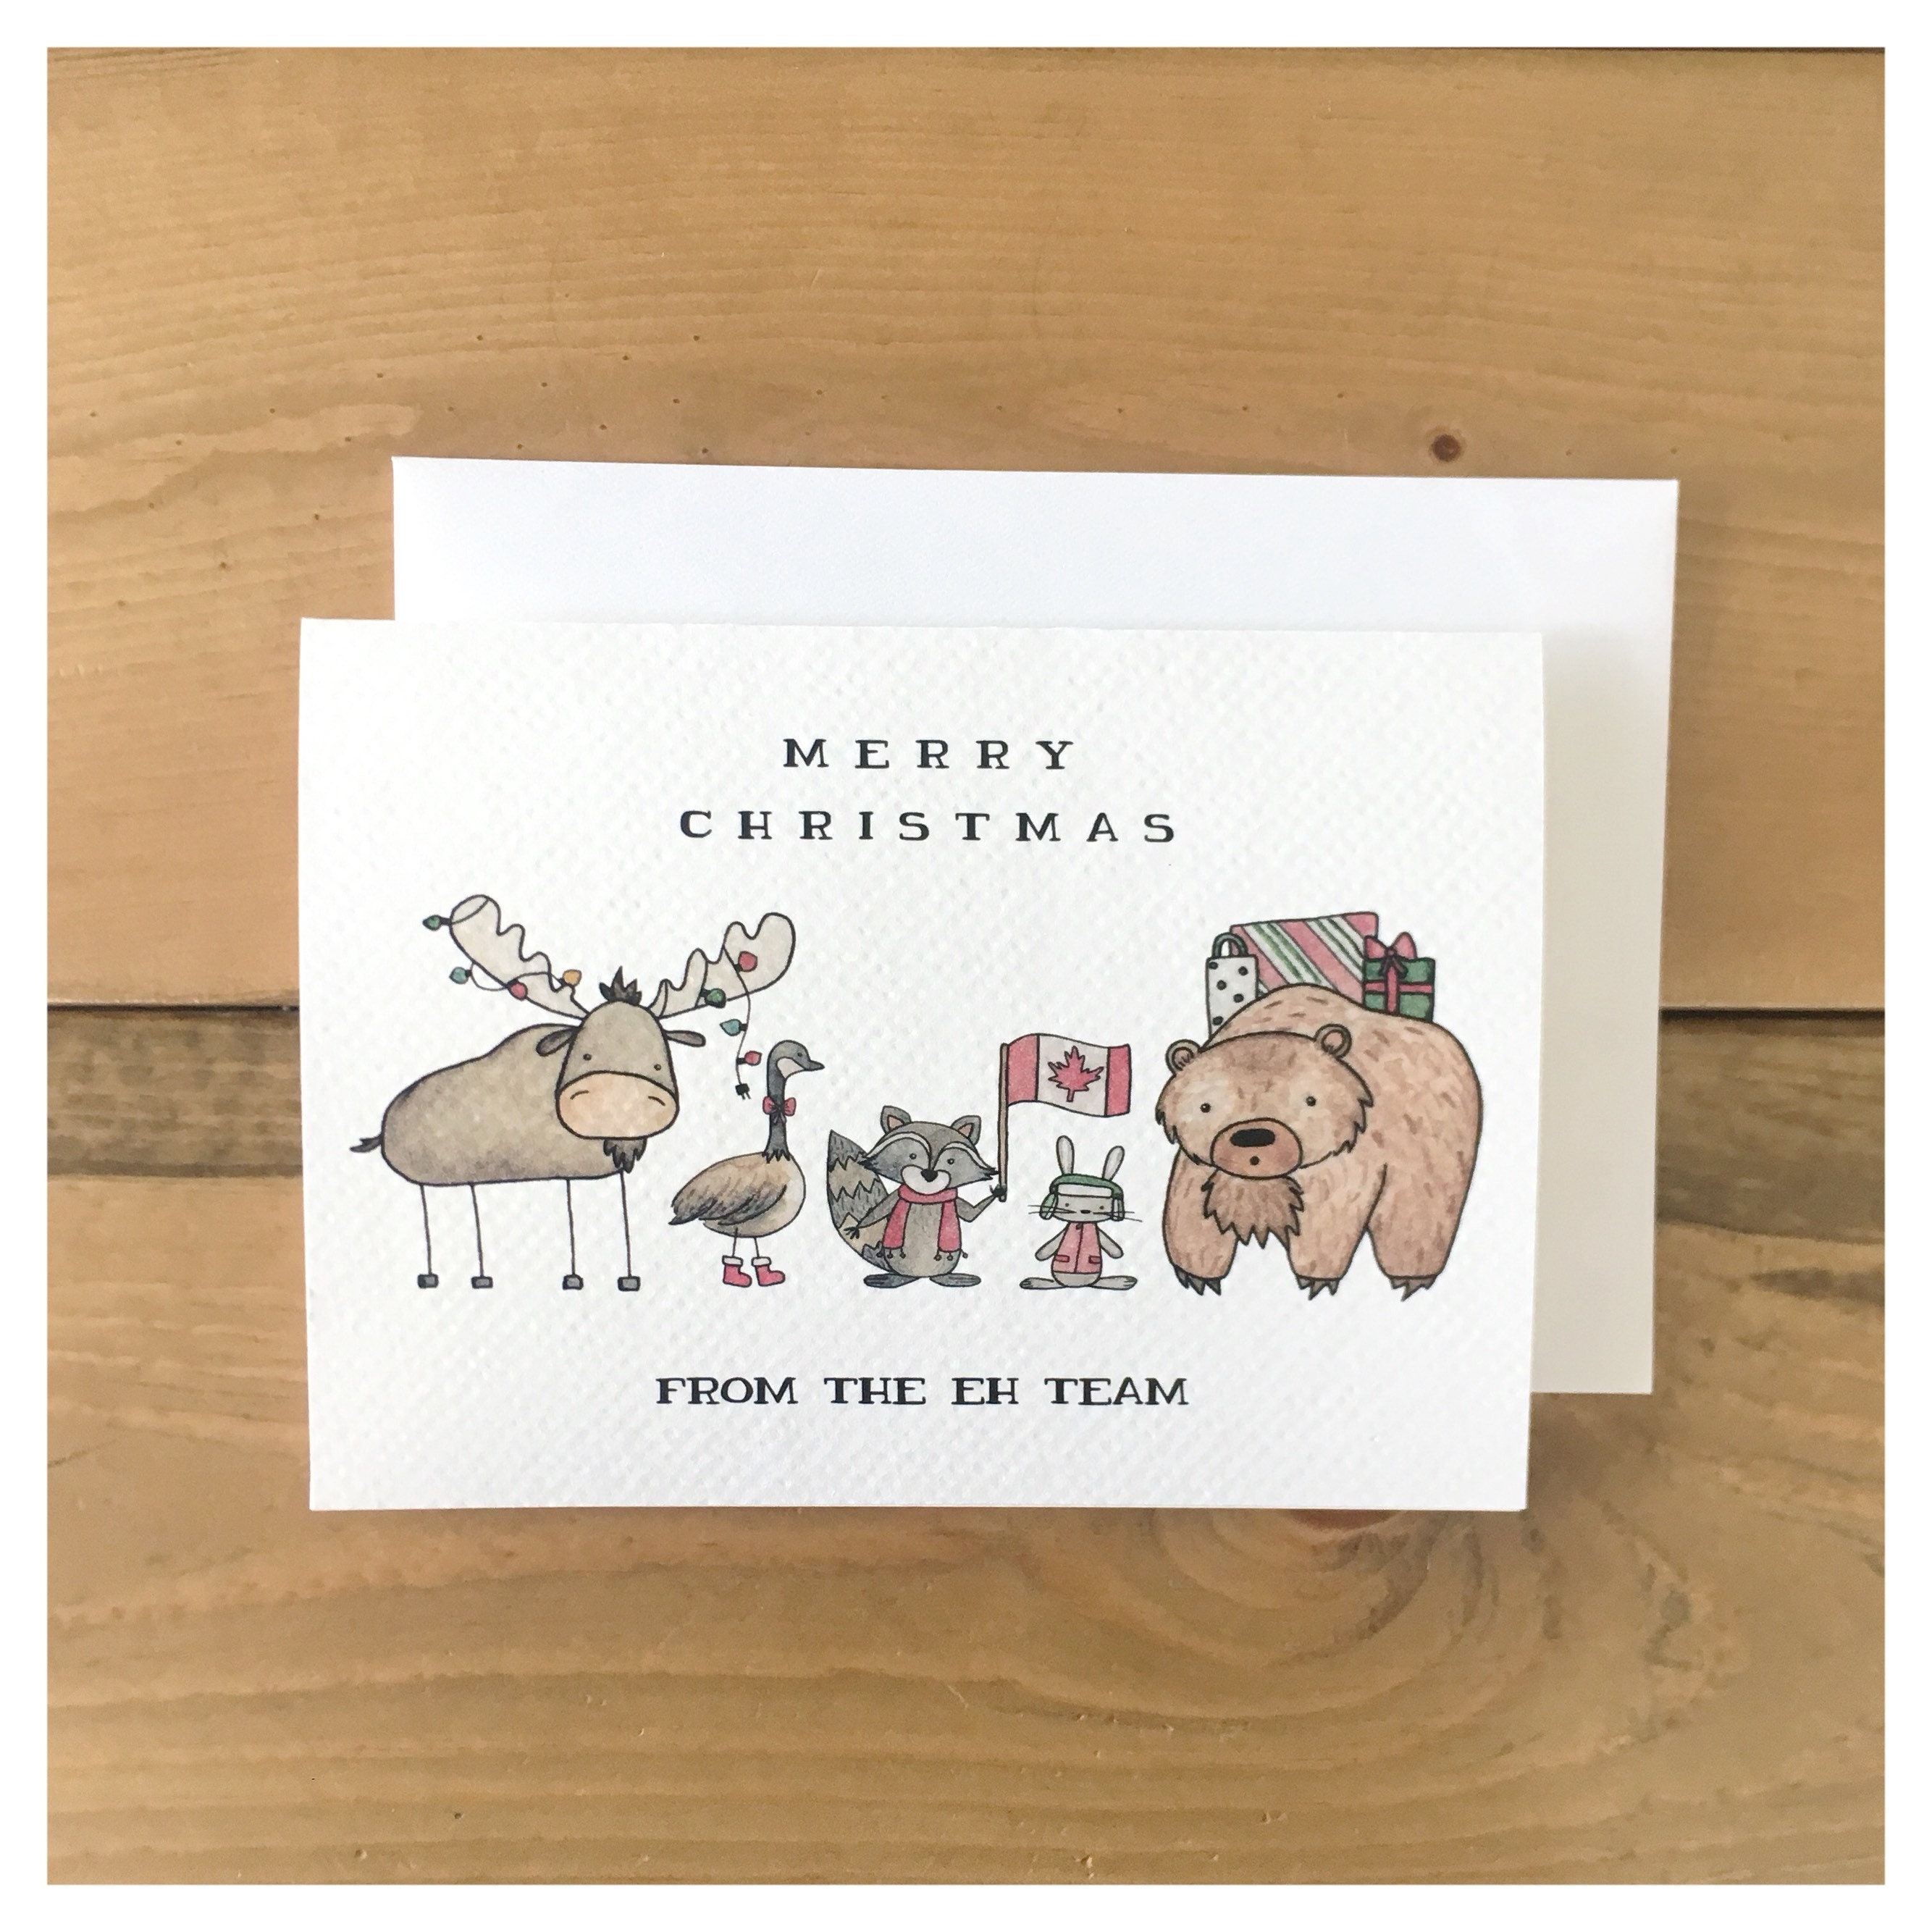 Eh team christmas card canada card canadian greeting card made eh team christmas card canada card canadian greeting card made in canada canadian animals eh punny pun funny card watercolour m4hsunfo